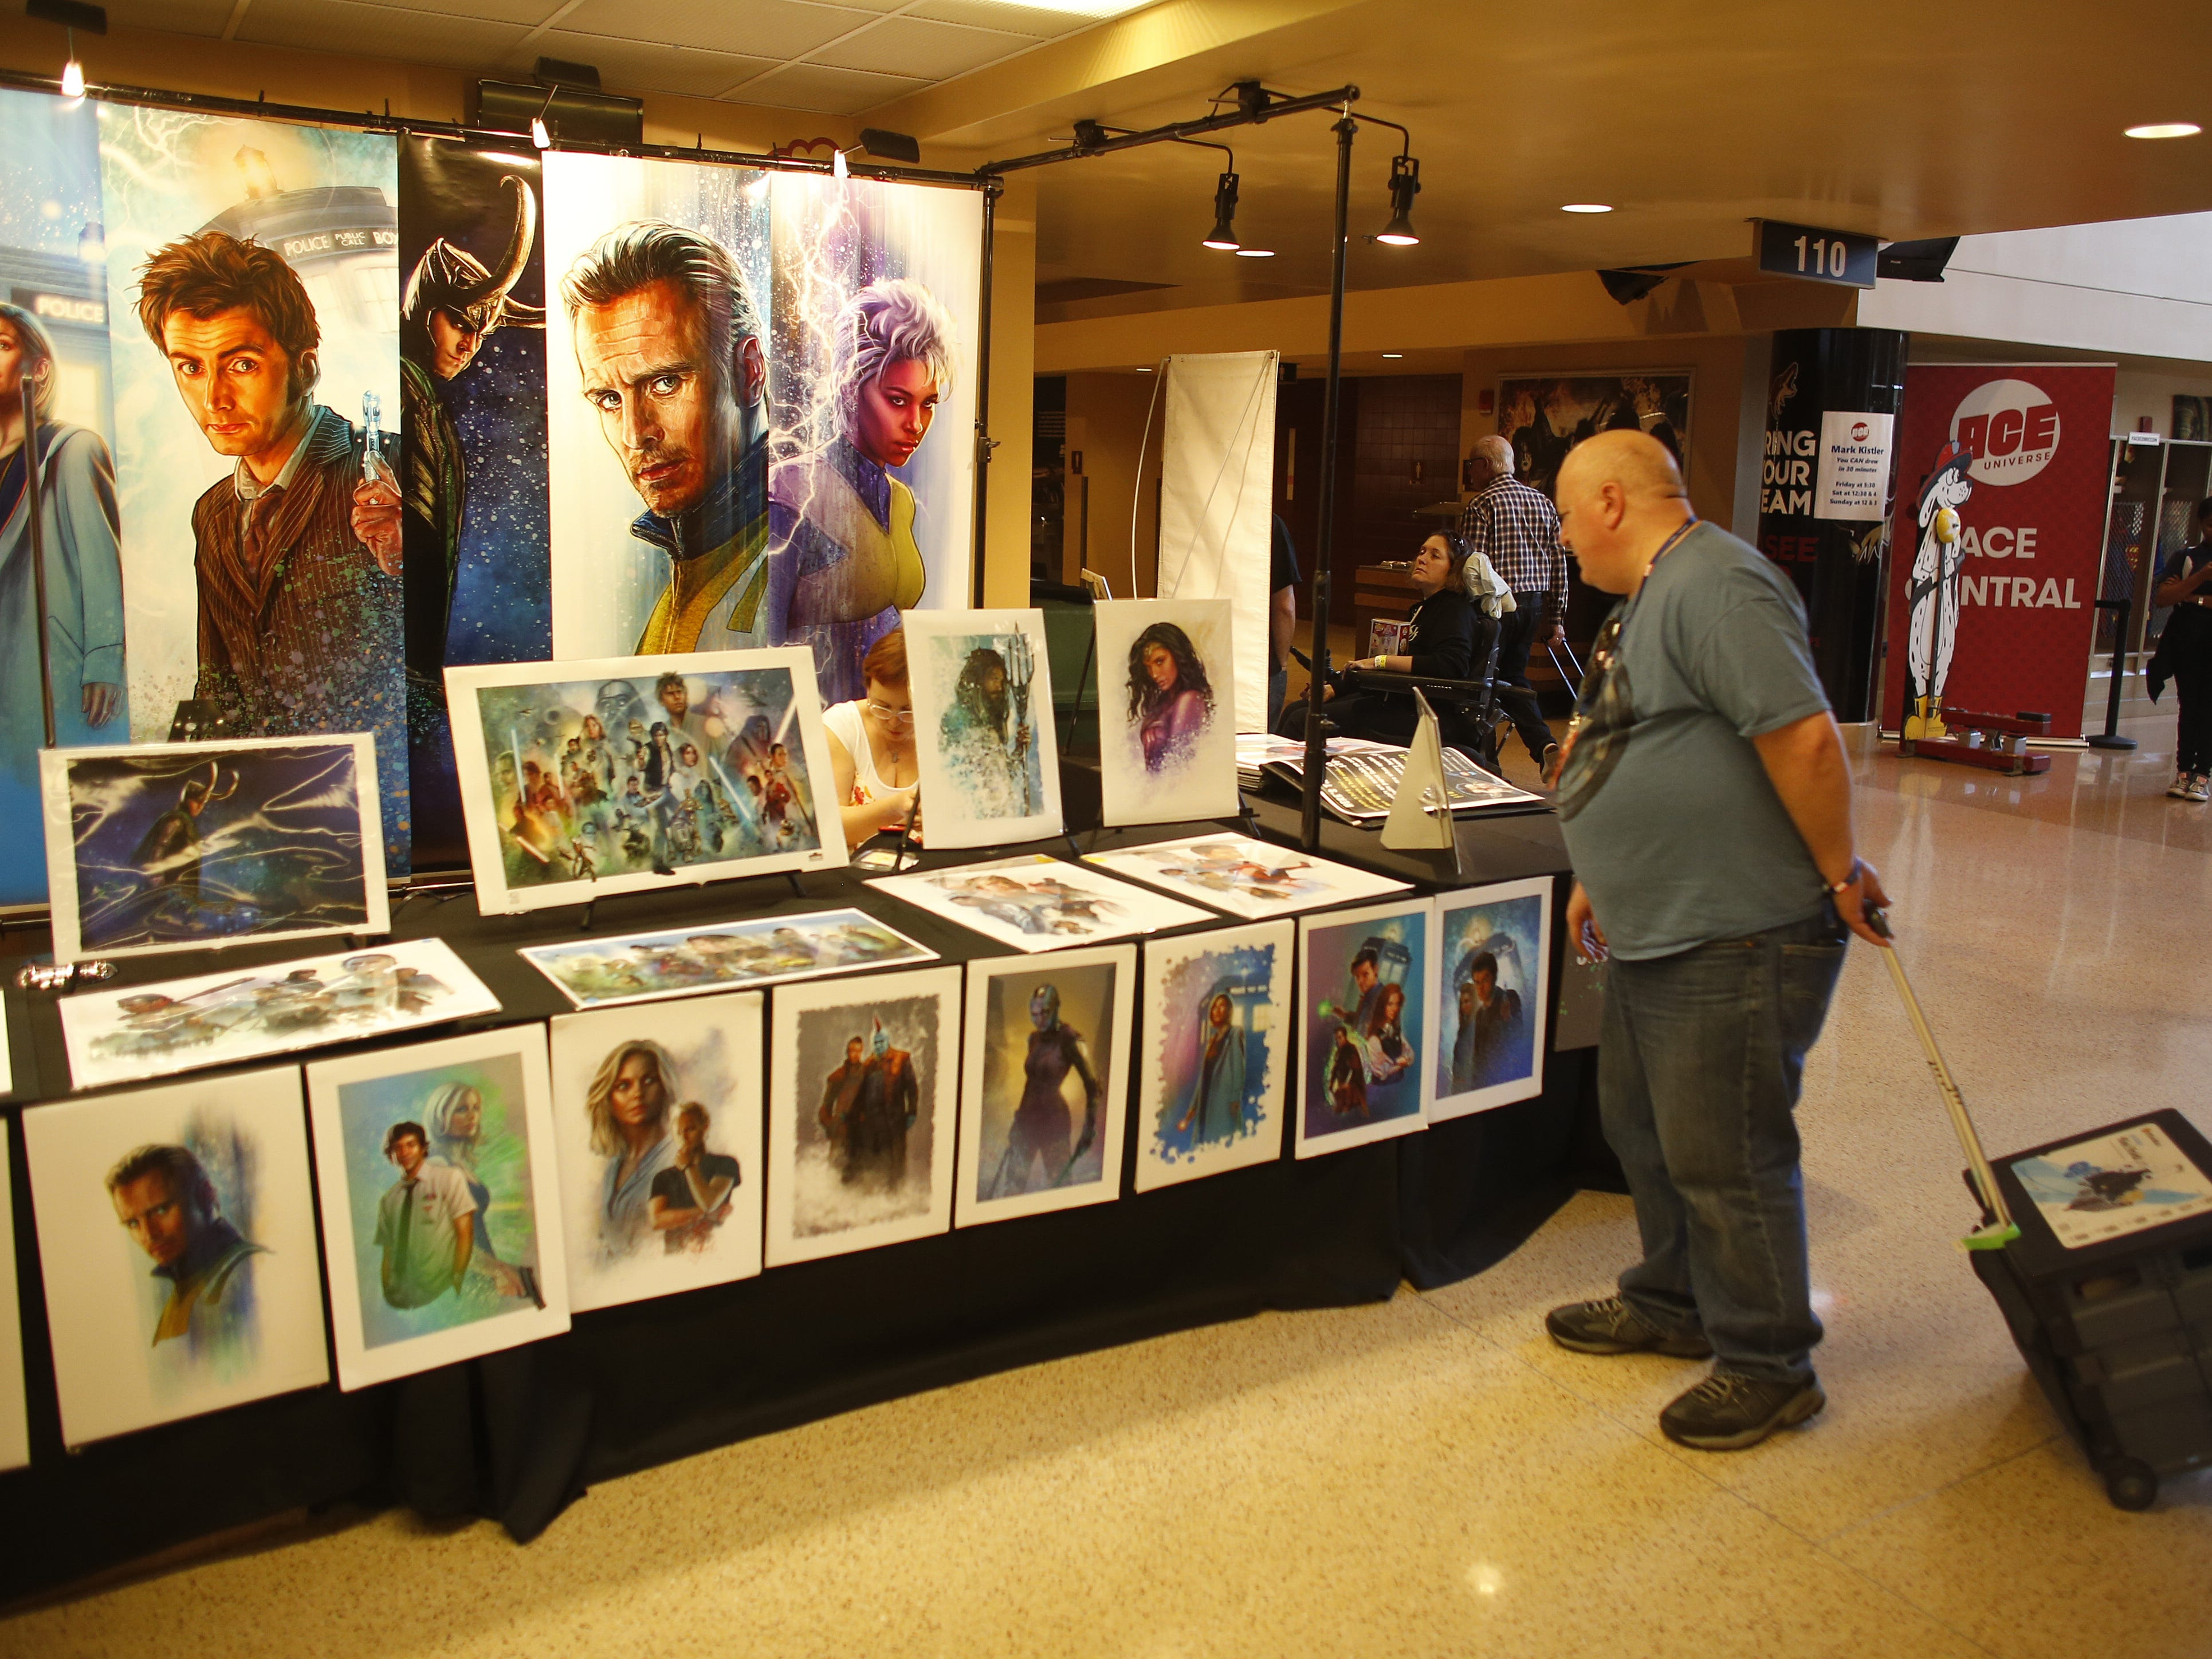 People stop and browse art from Jason Palmer on opening day of Ace Comic Con 2019 at Gila River Arena in Glendale, Ariz. on Jan. 11, 2019.